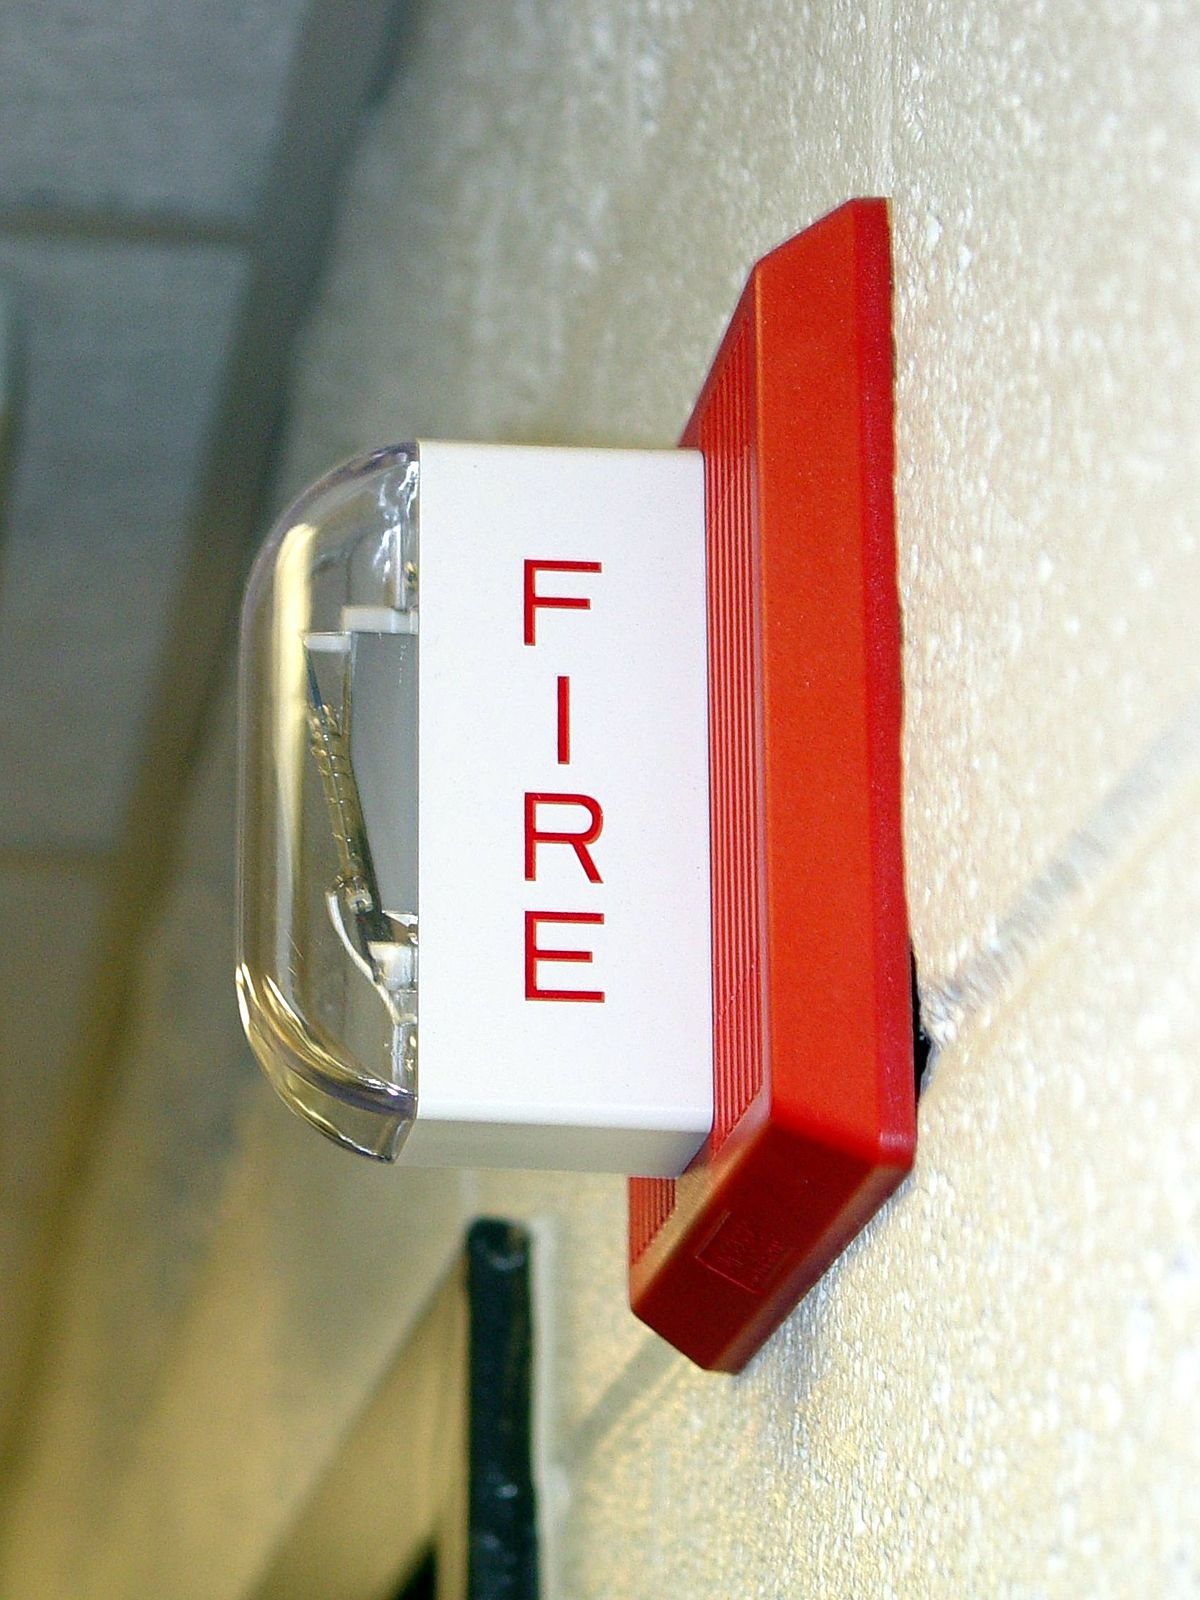 Fire Alarm System Wikipedia Fire Alarm System Fire Alarm Fire Hydrant System